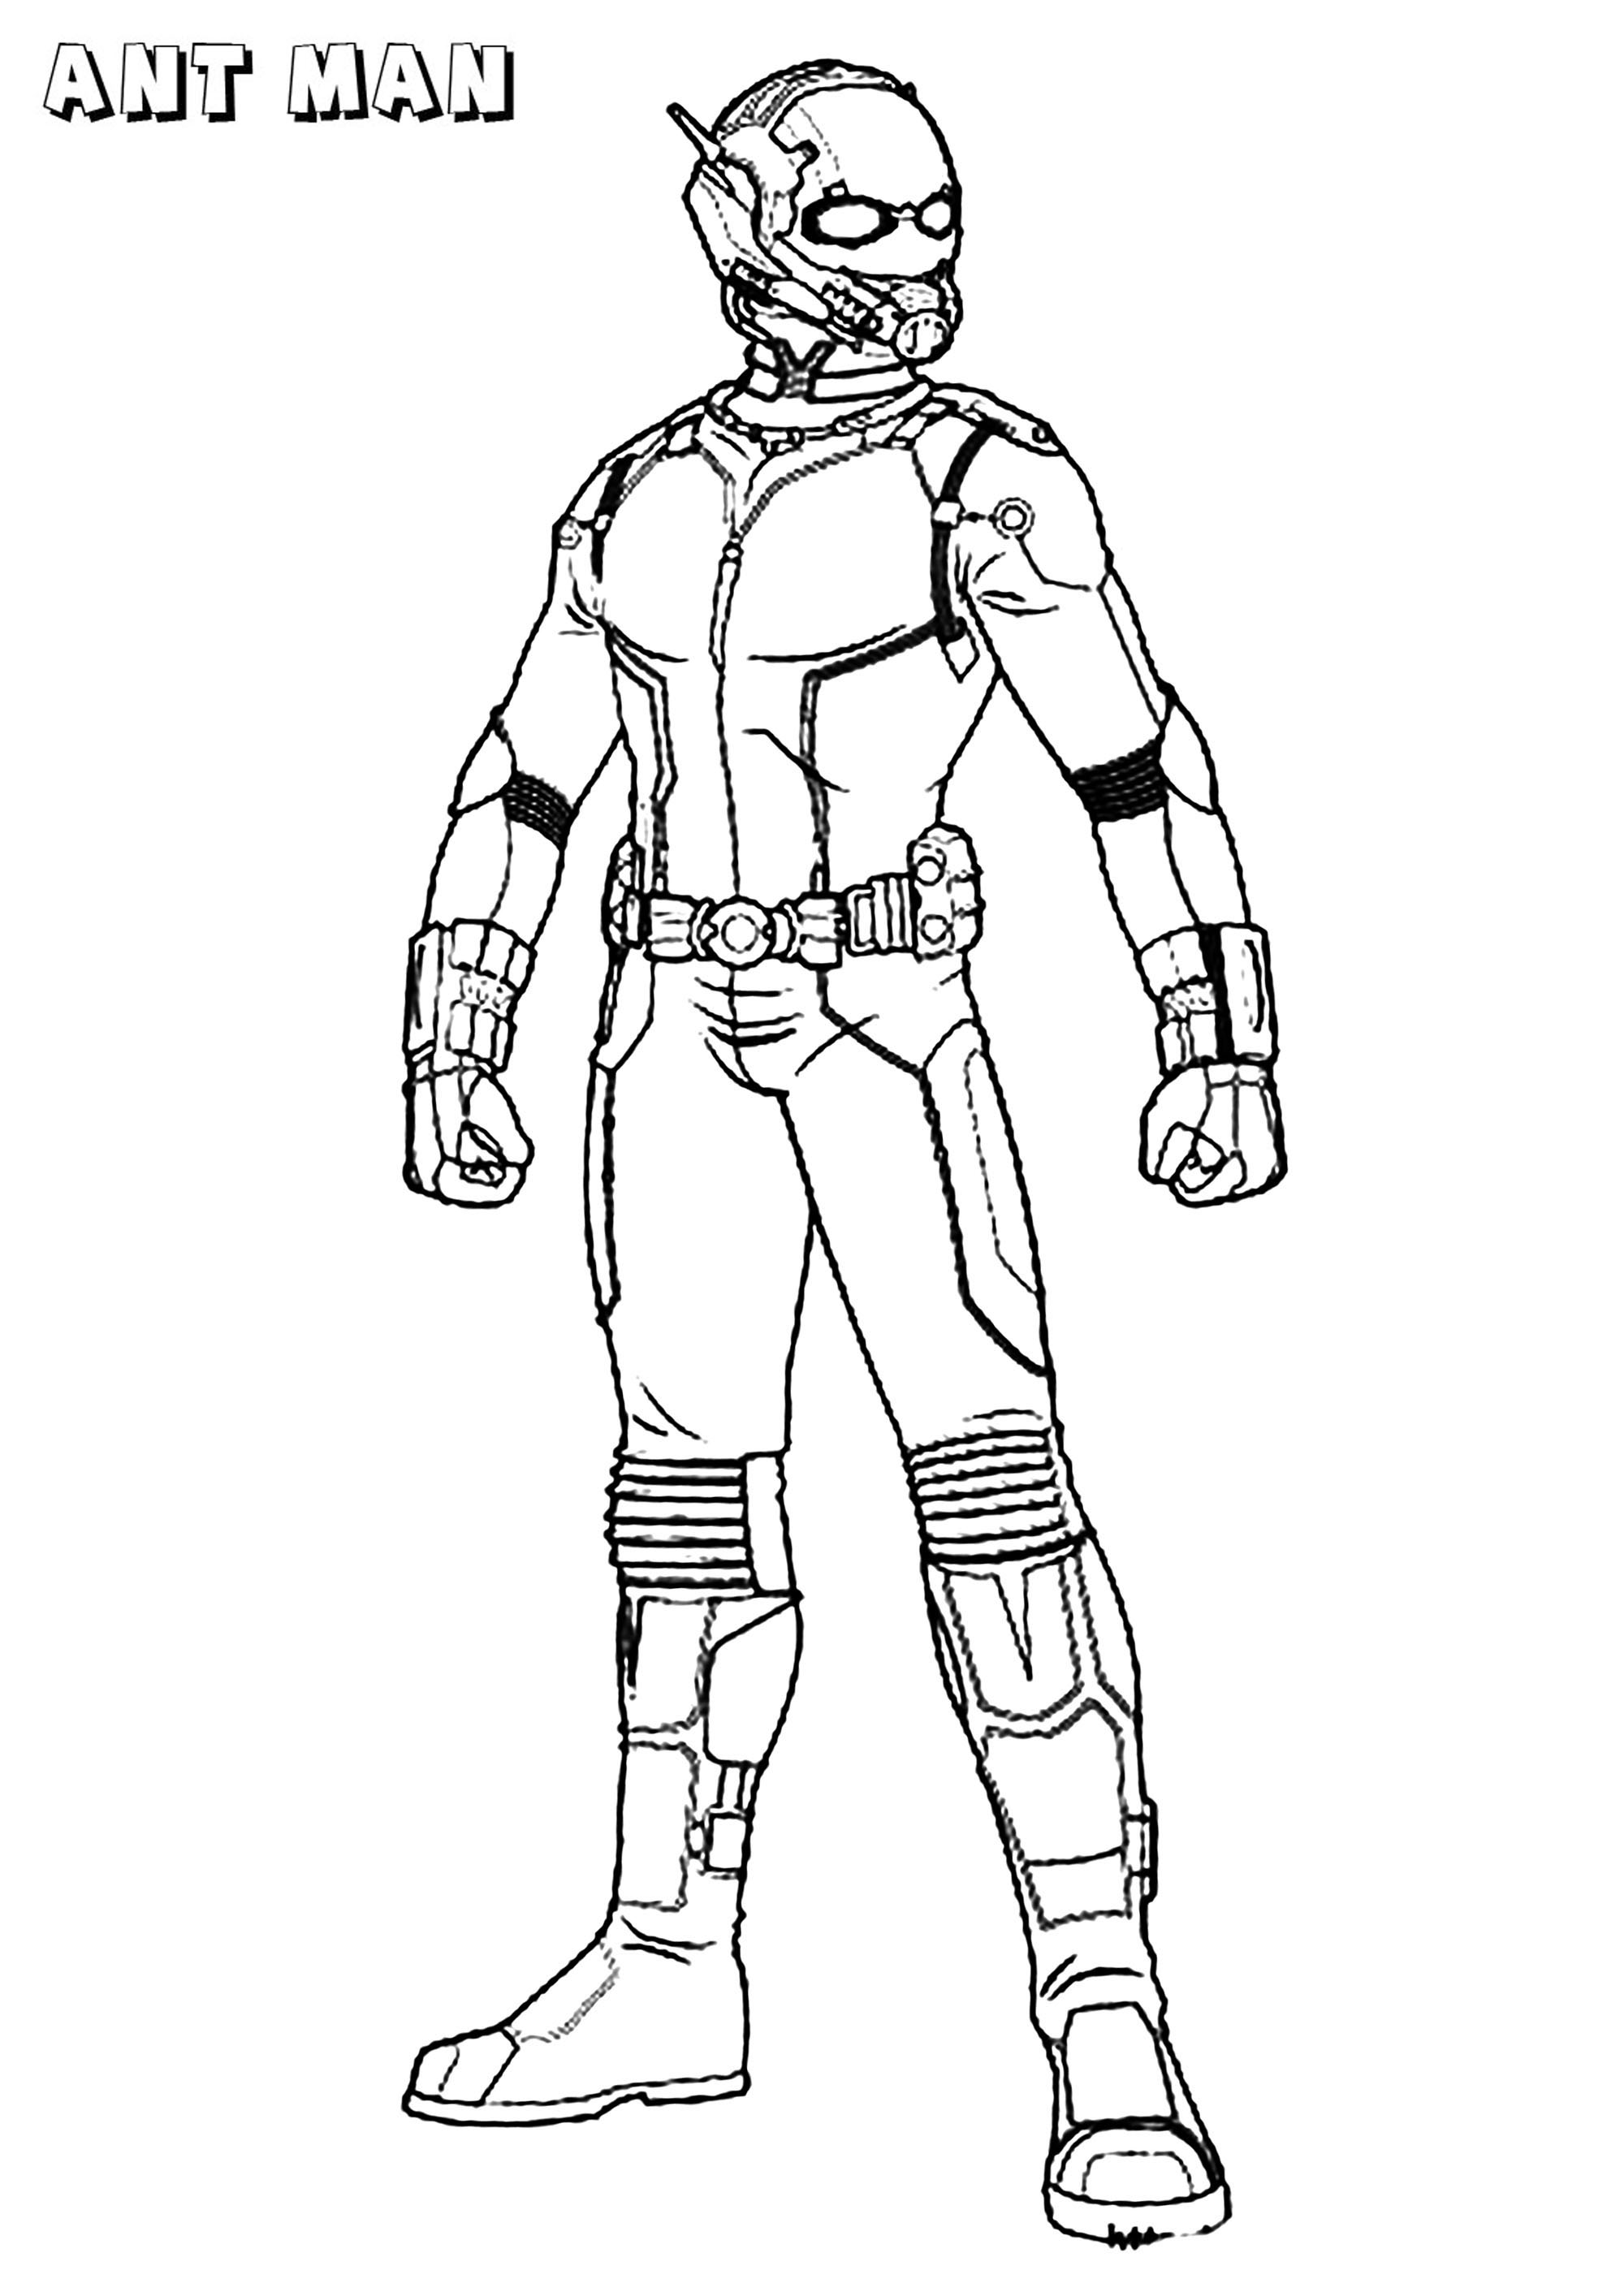 lego ant man coloring page ant man coloring pages coloring home page ant lego man coloring